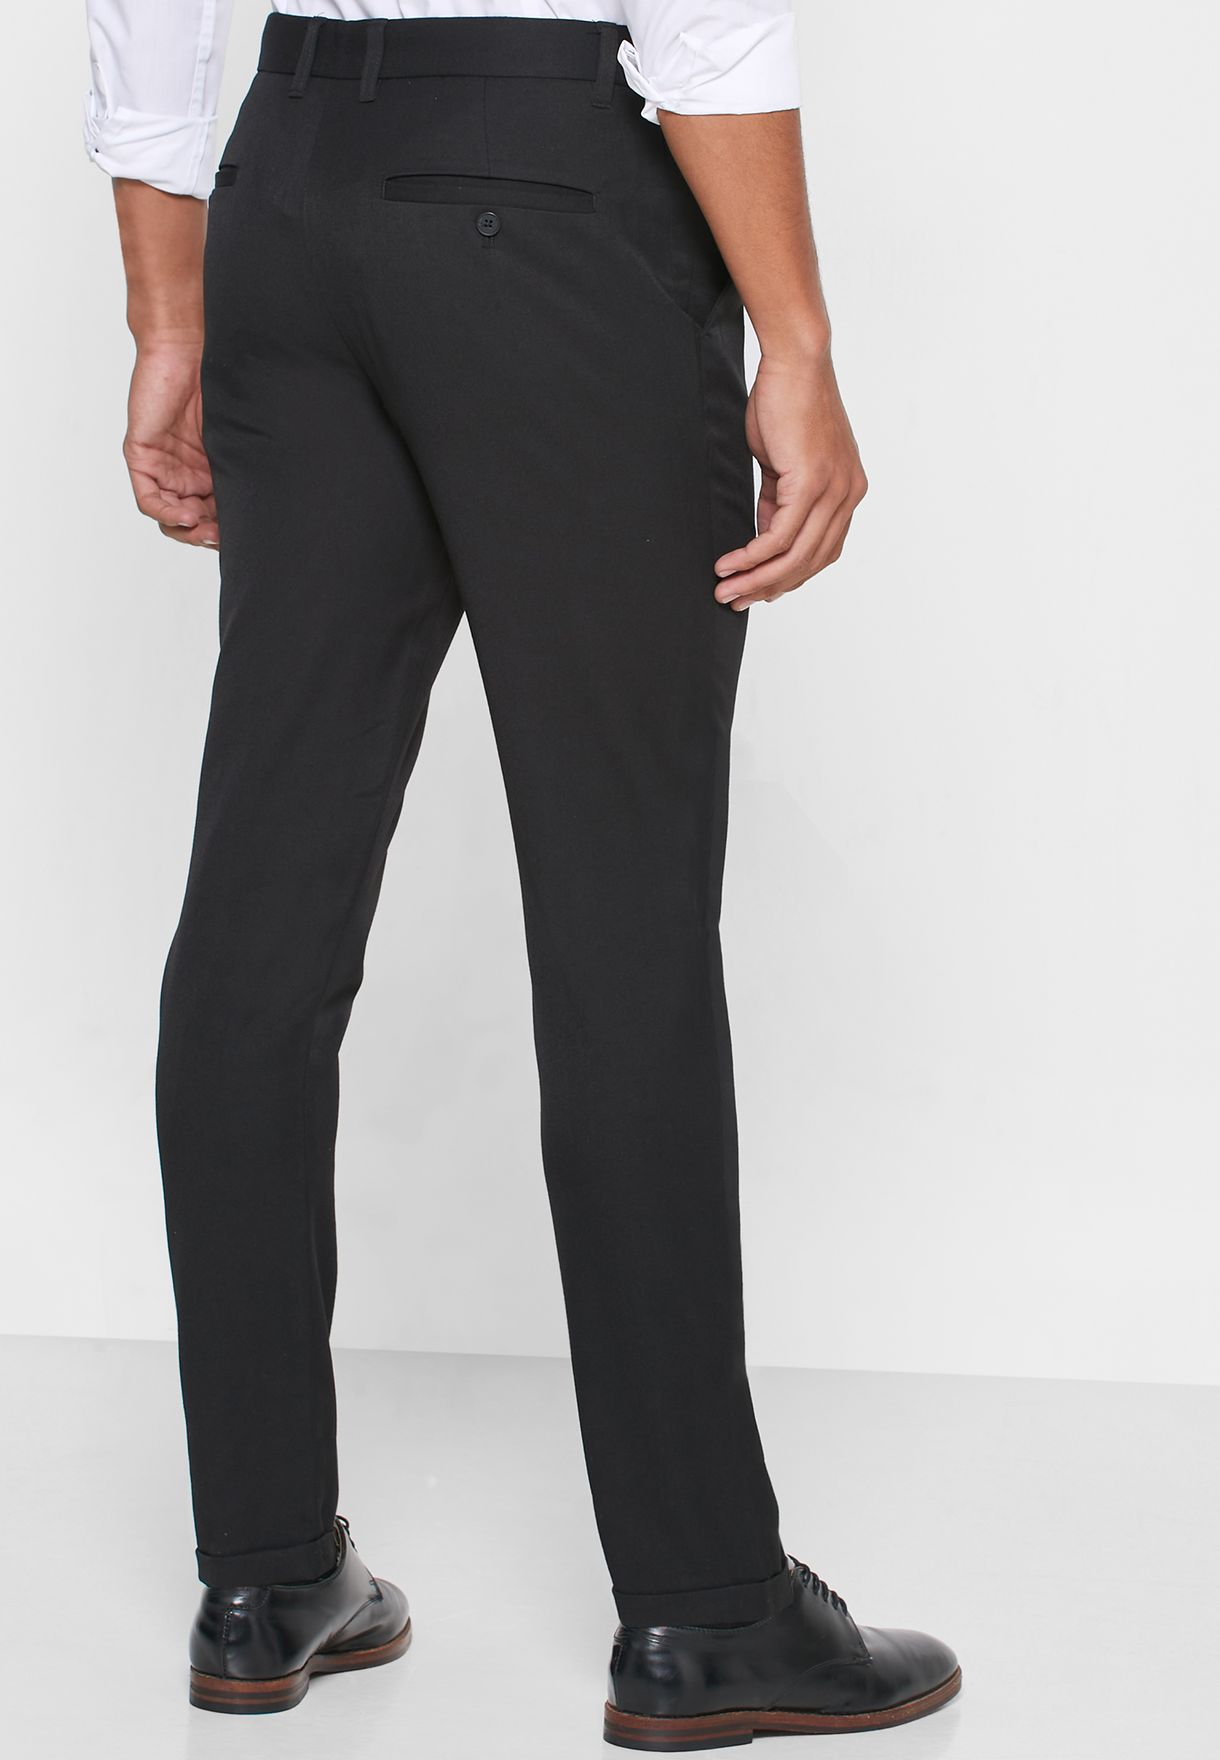 Ugge Slim Fit Trousers